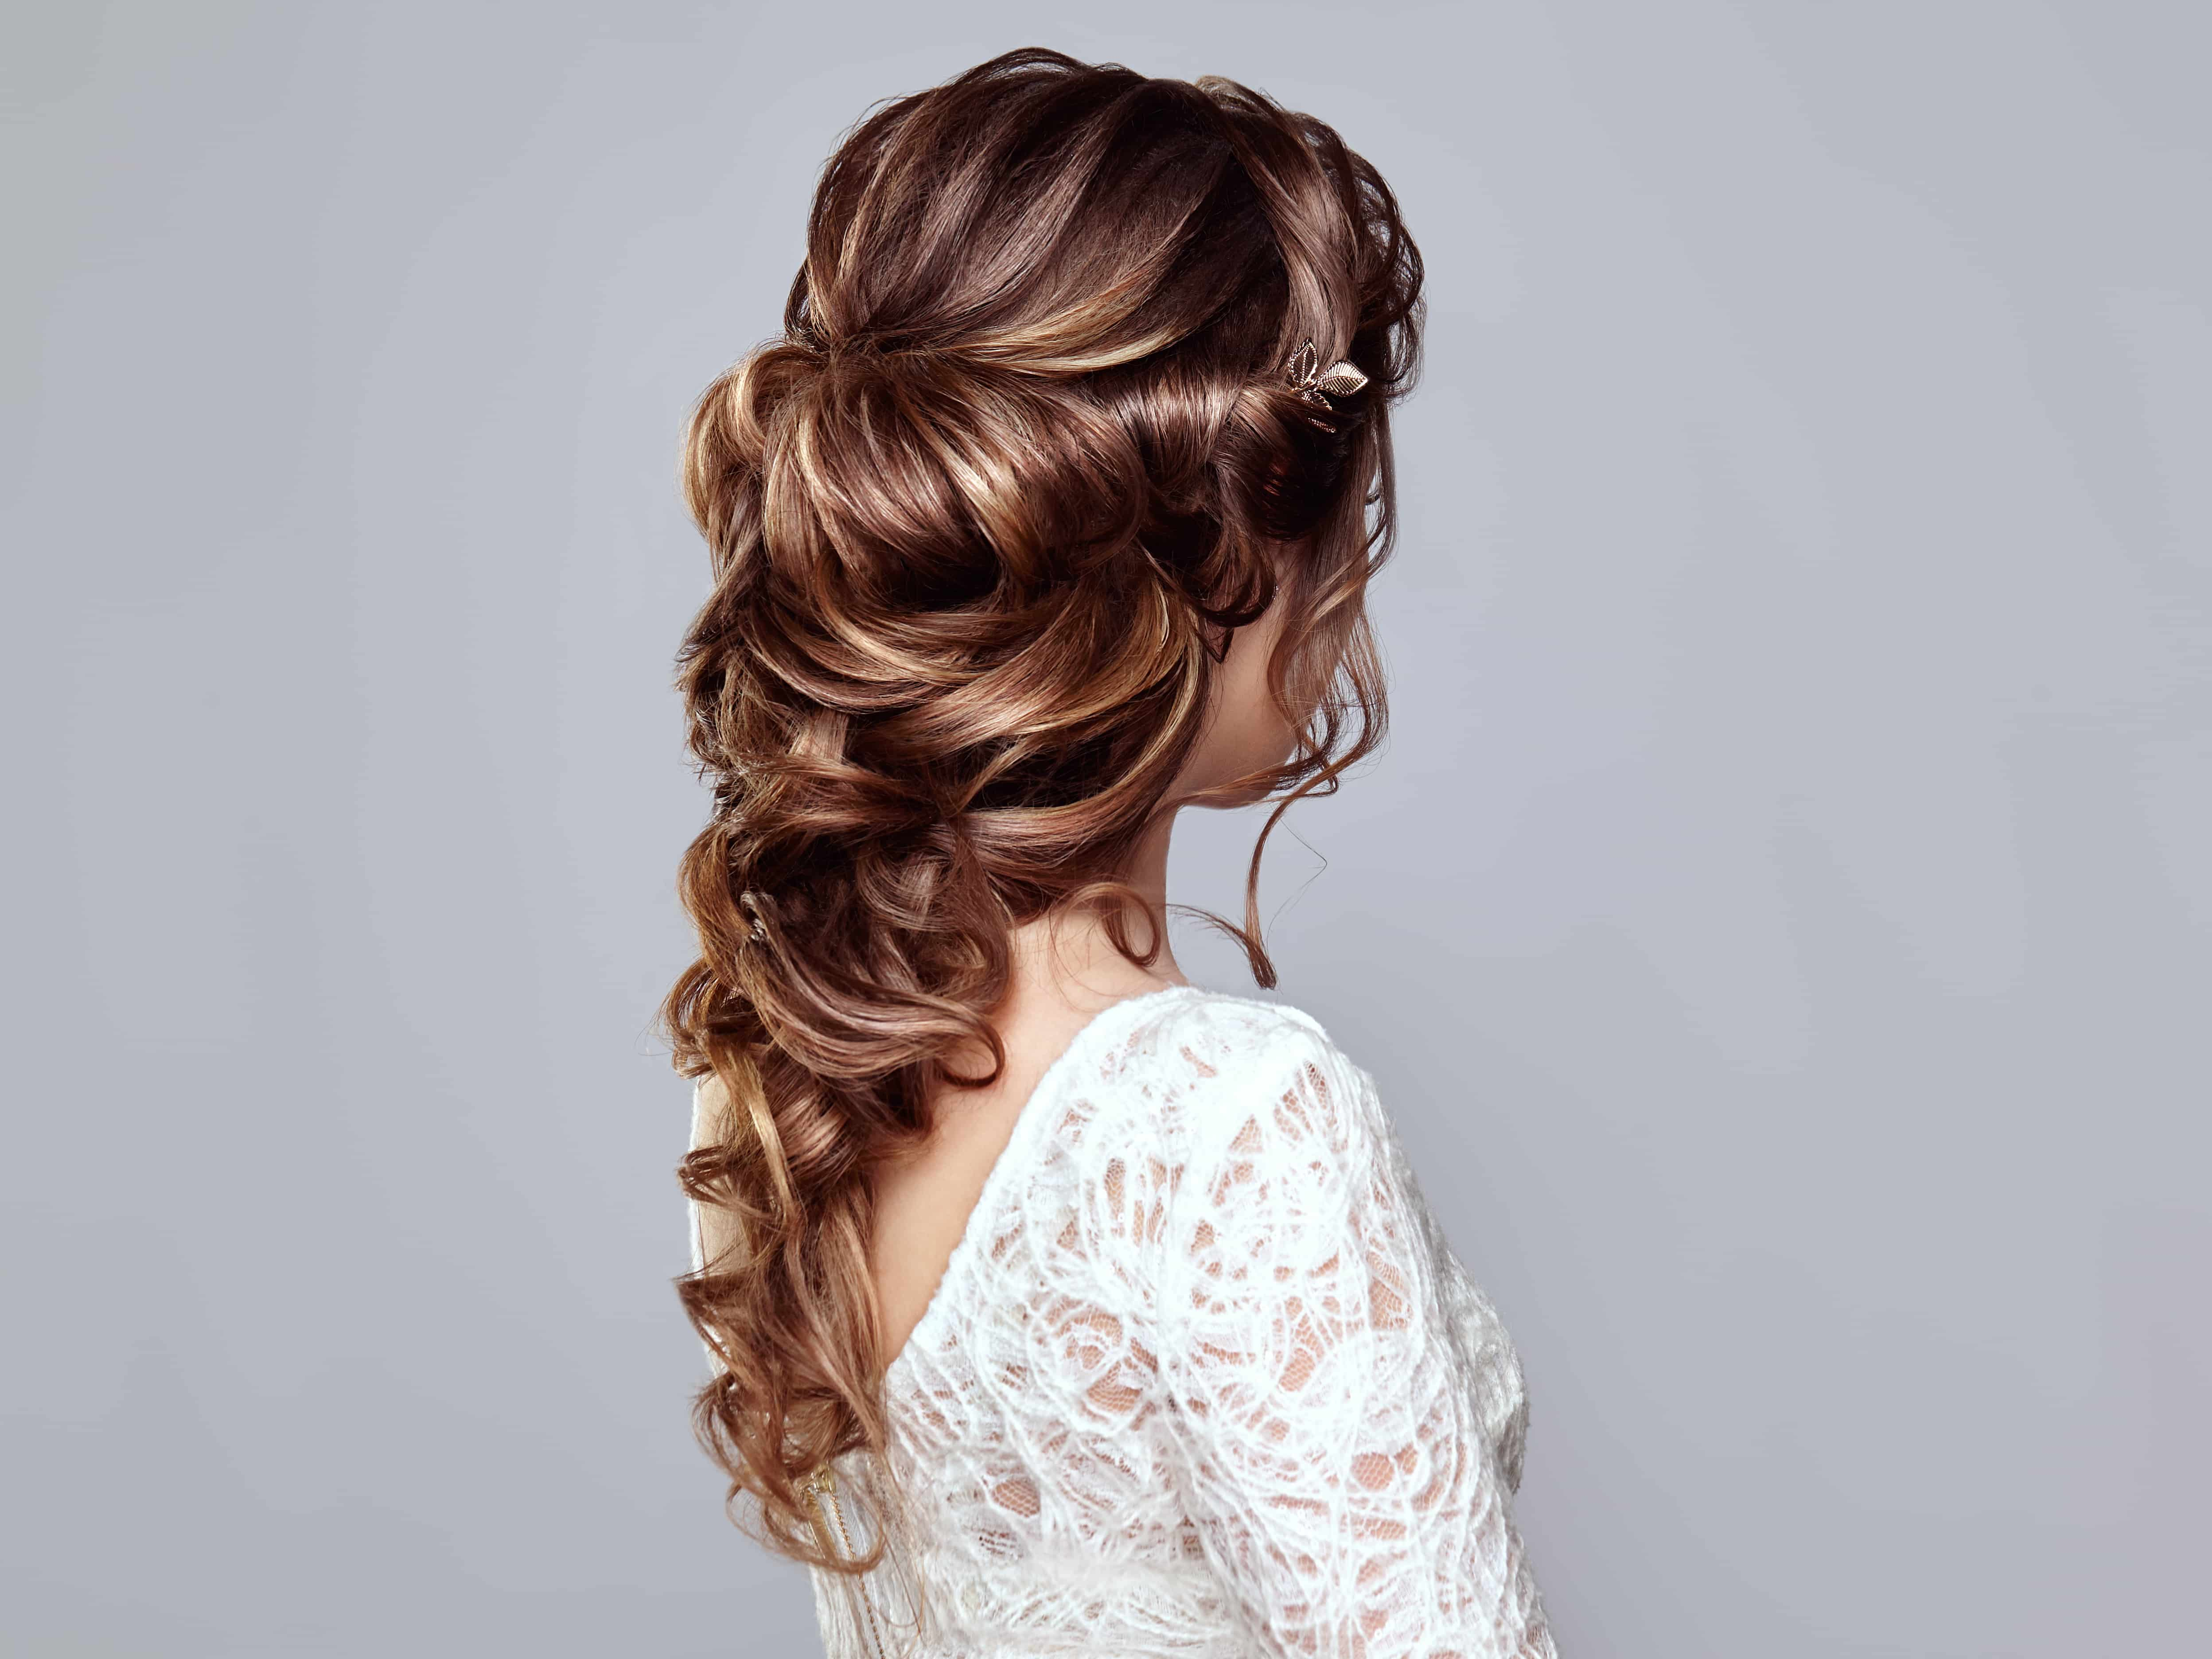 Brunette woman with long and shiny curly hair-min.jpeg